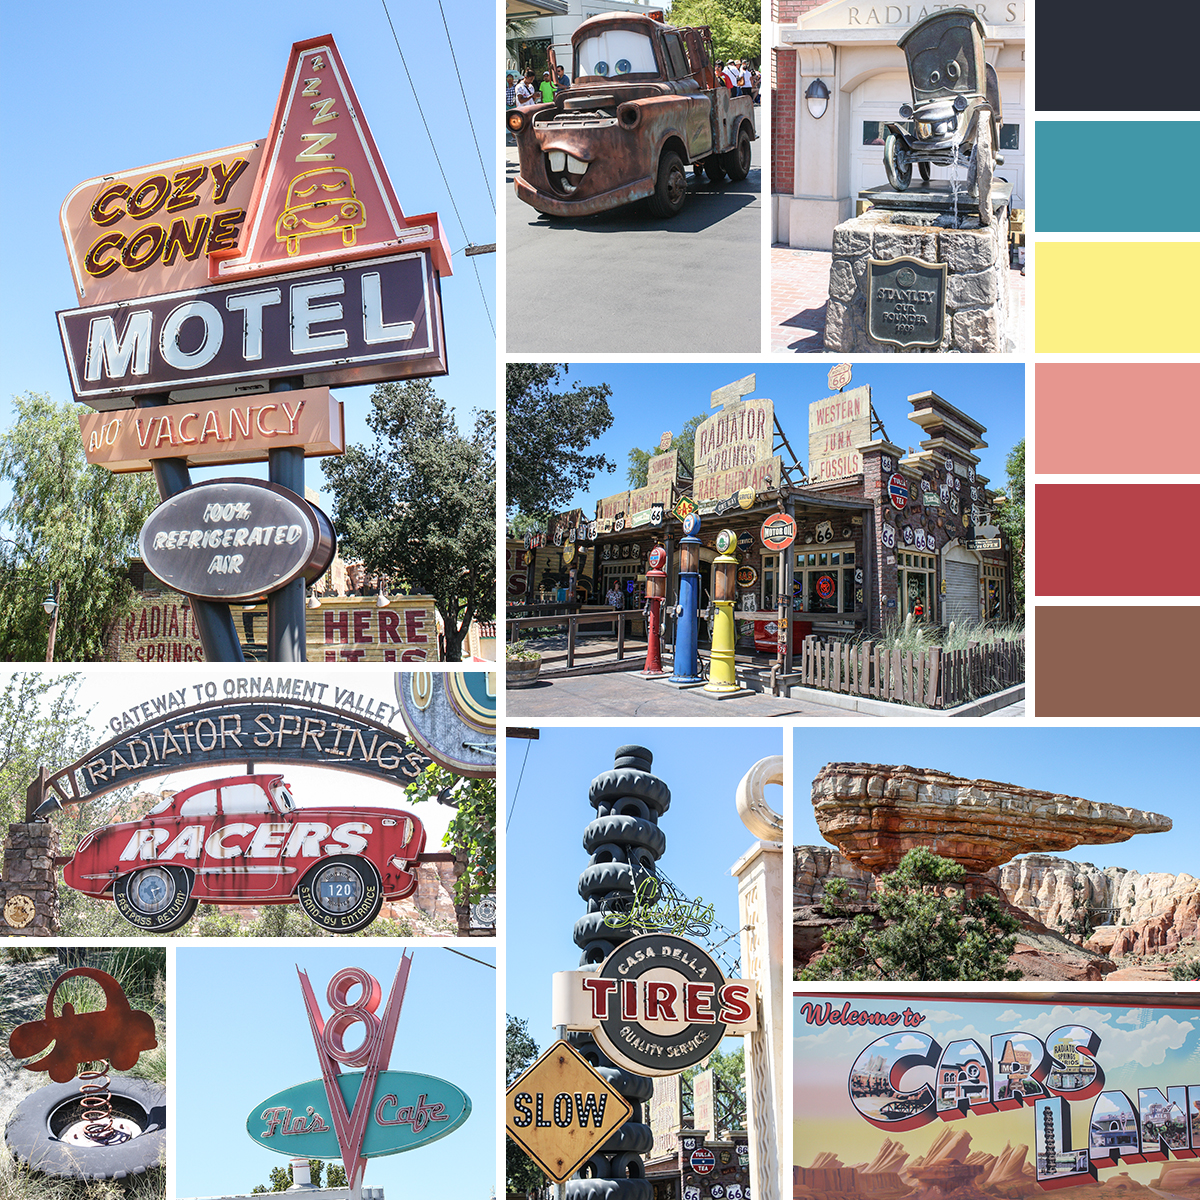 Radiator Springs in Disney California Adventure